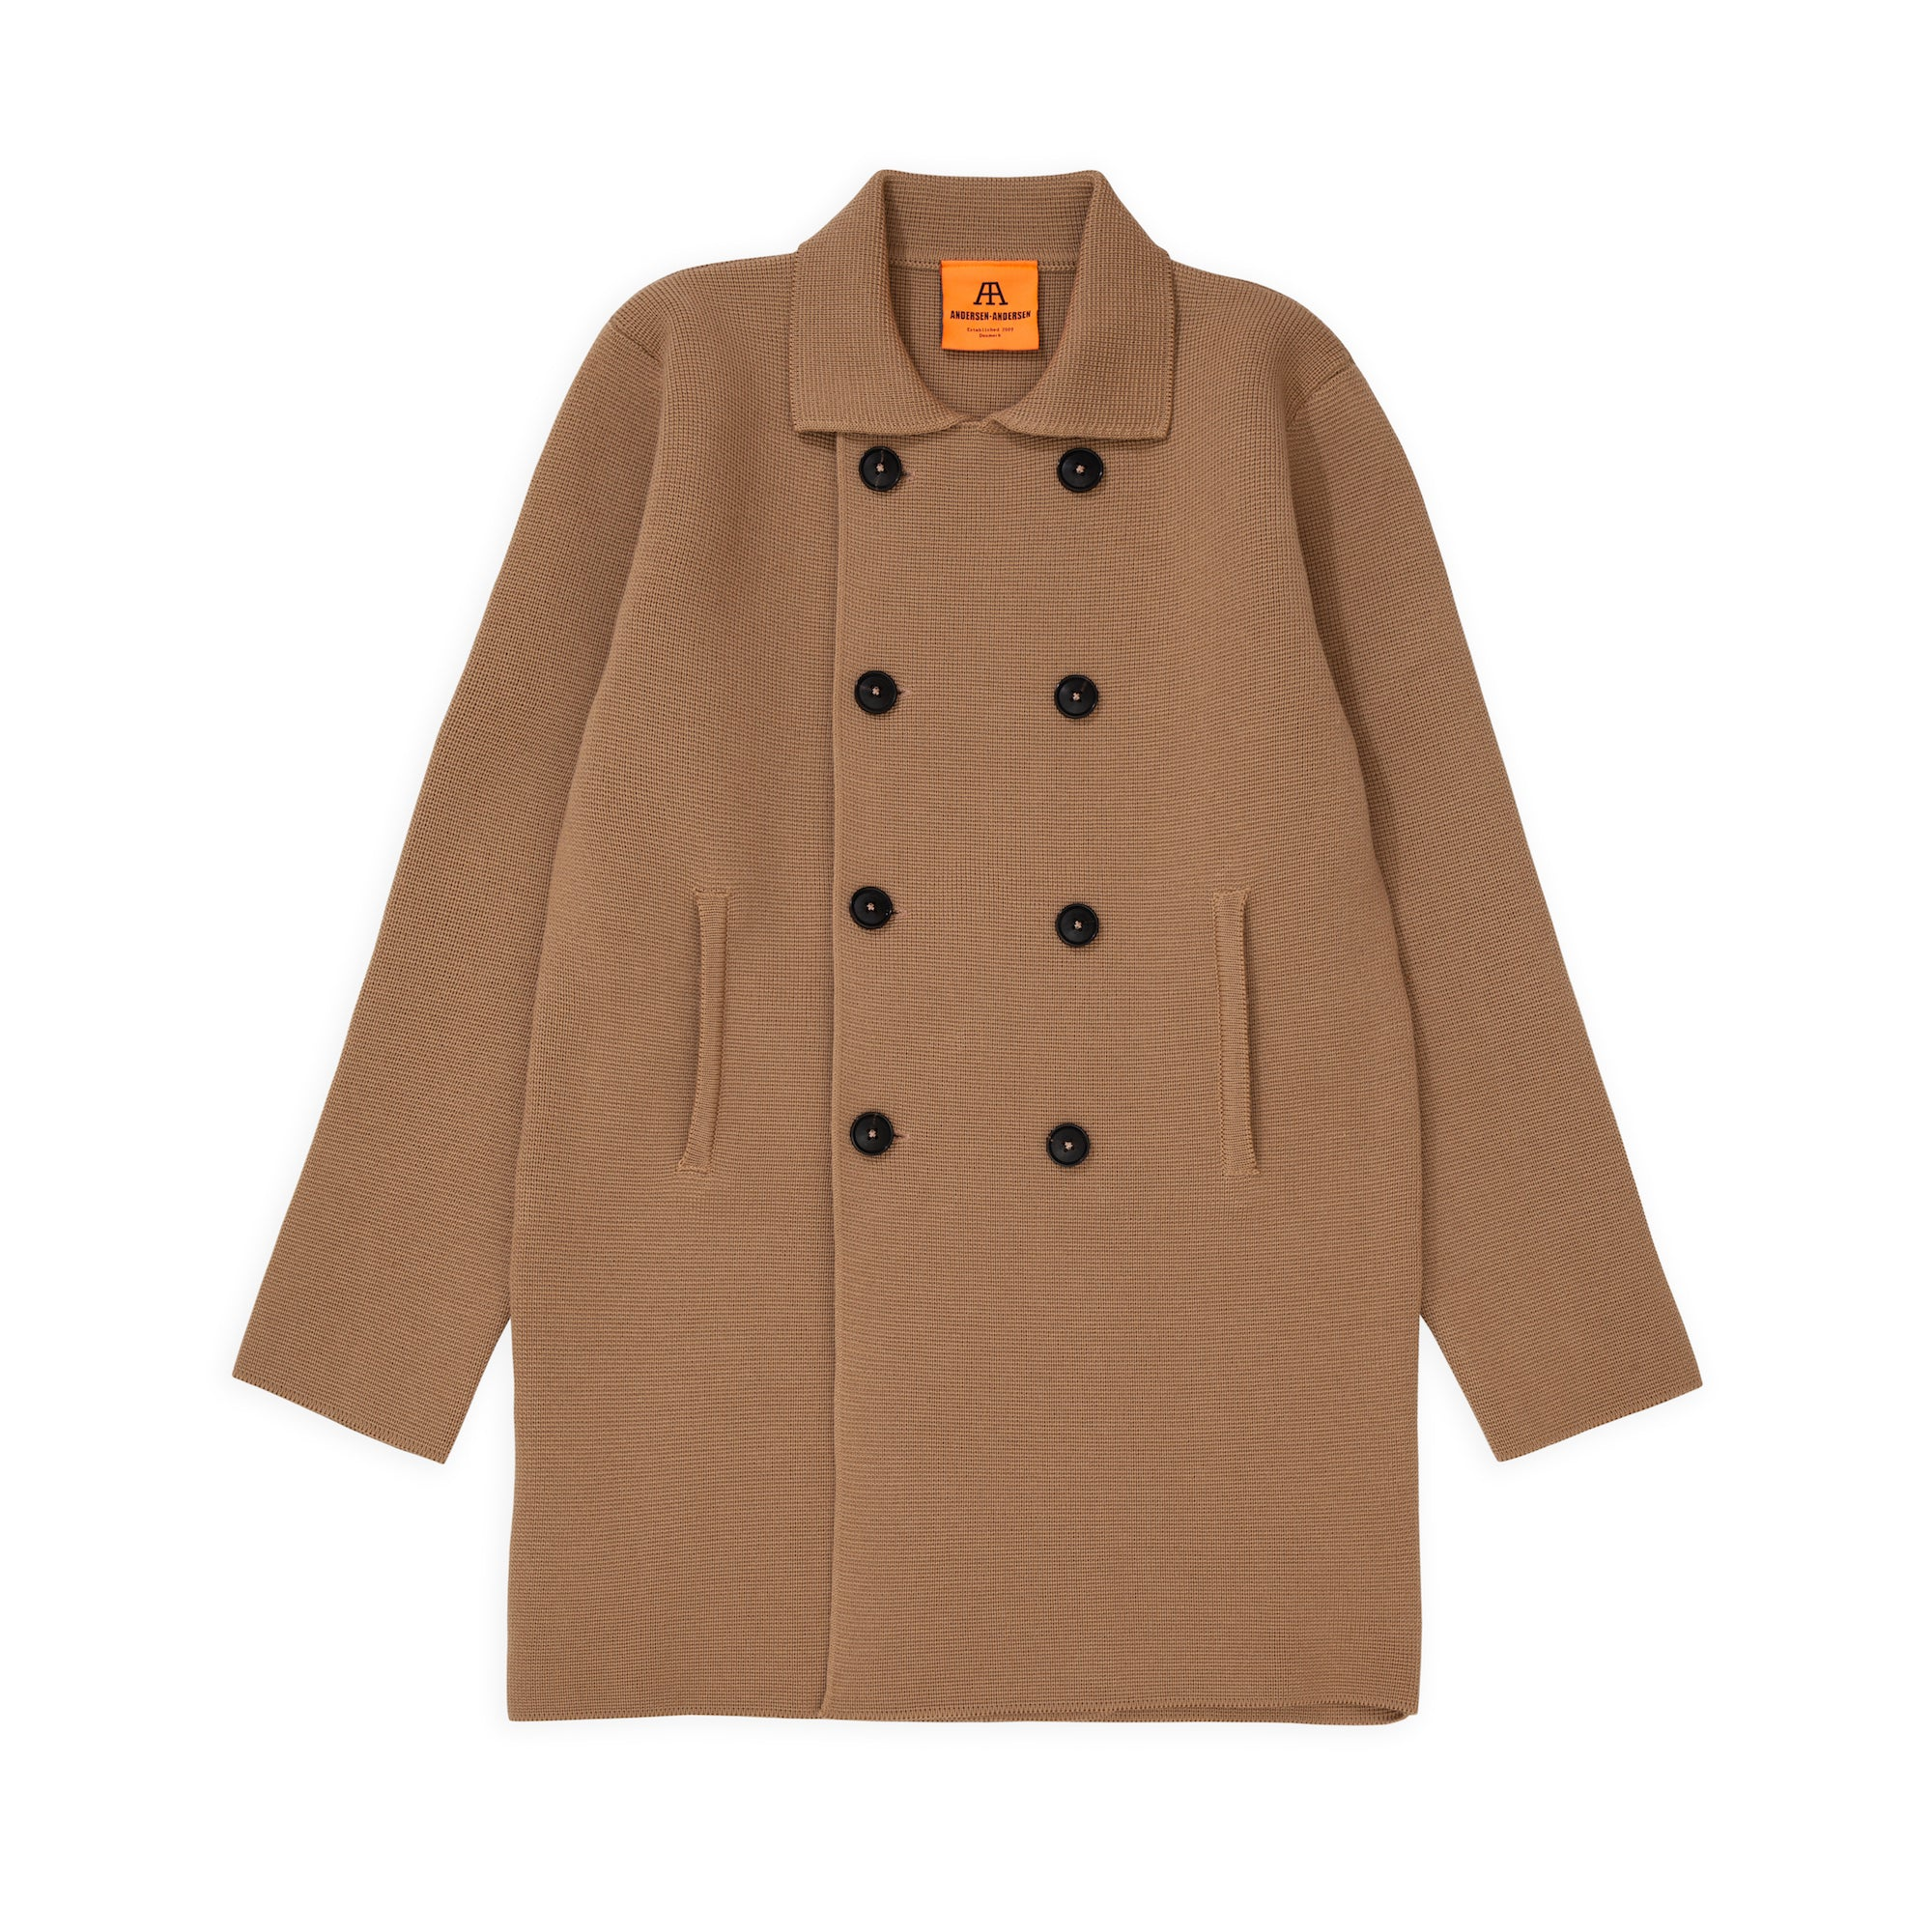 Peacoat Long - Camel